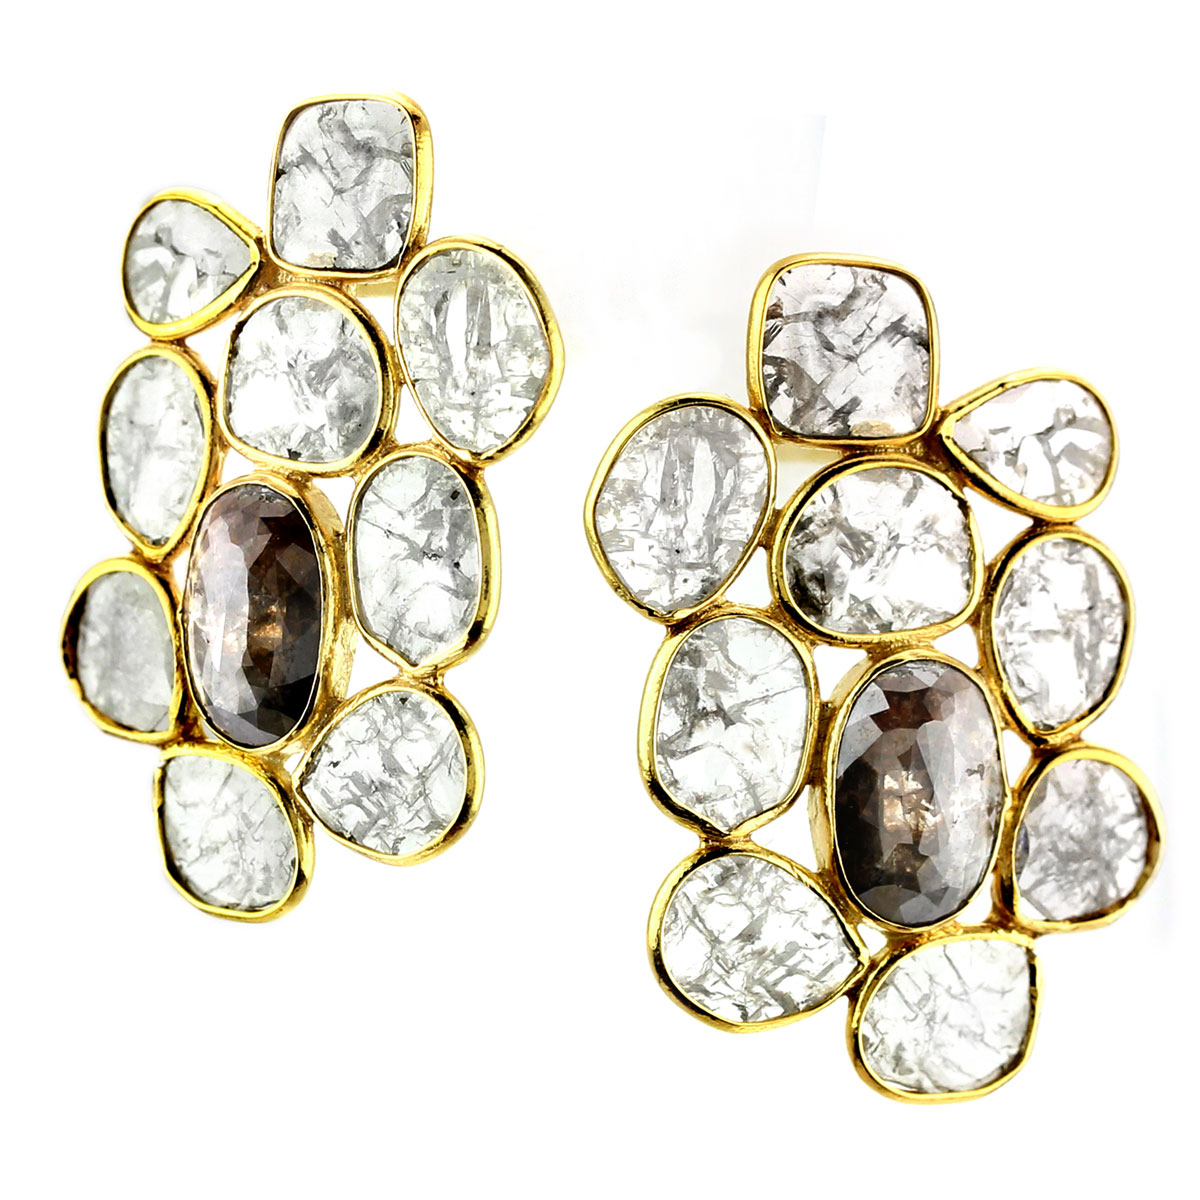 341251-Raw Diamond Earrings